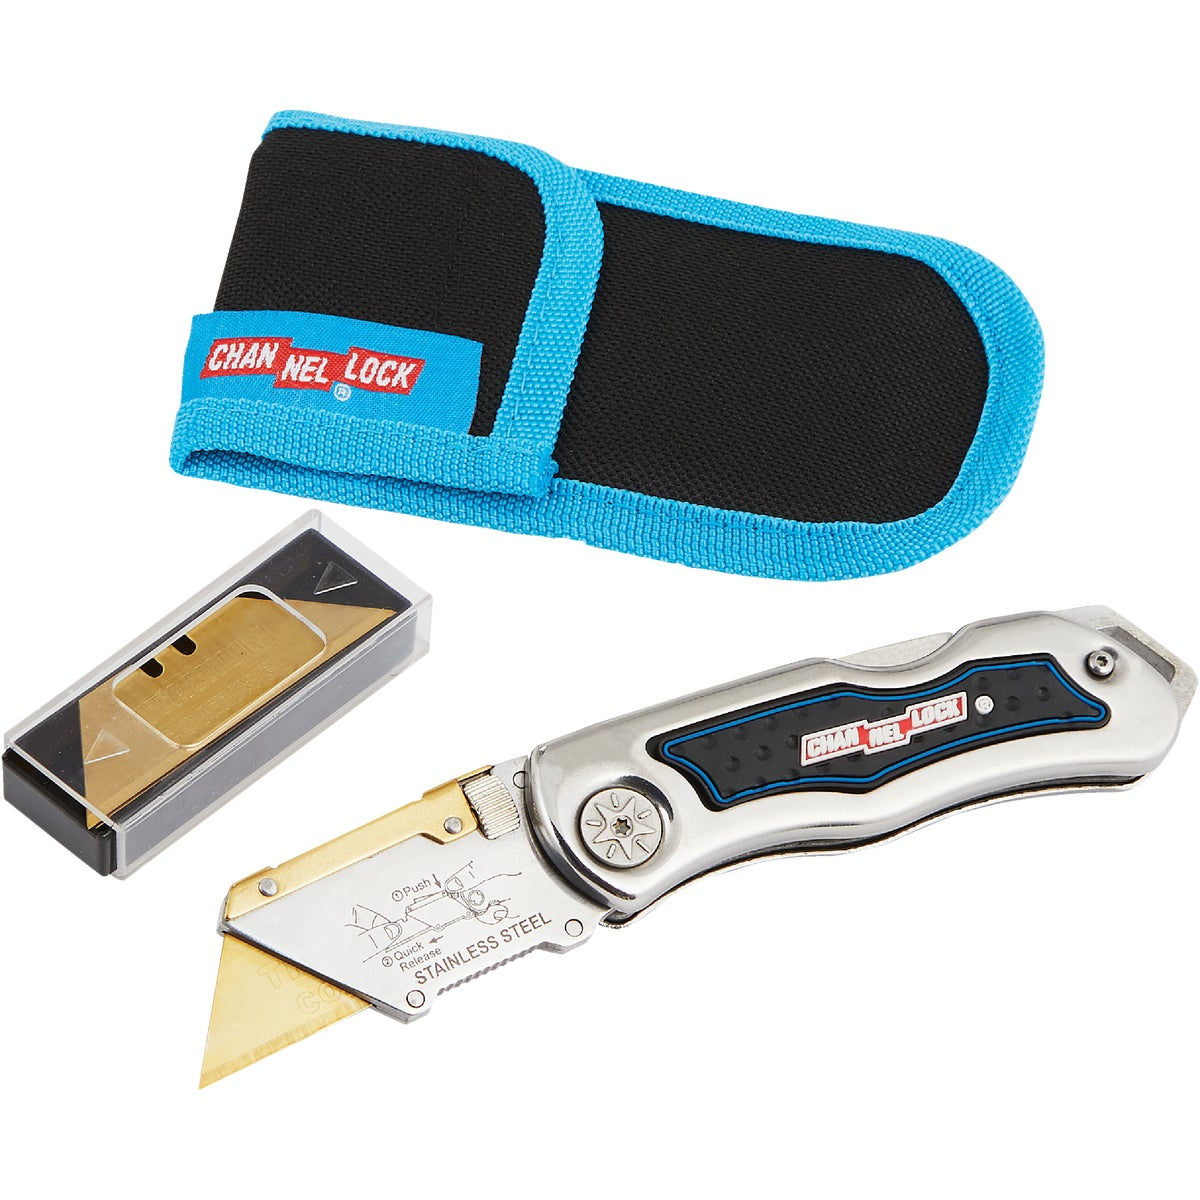 LOCKBACK UTILITY KNIFE